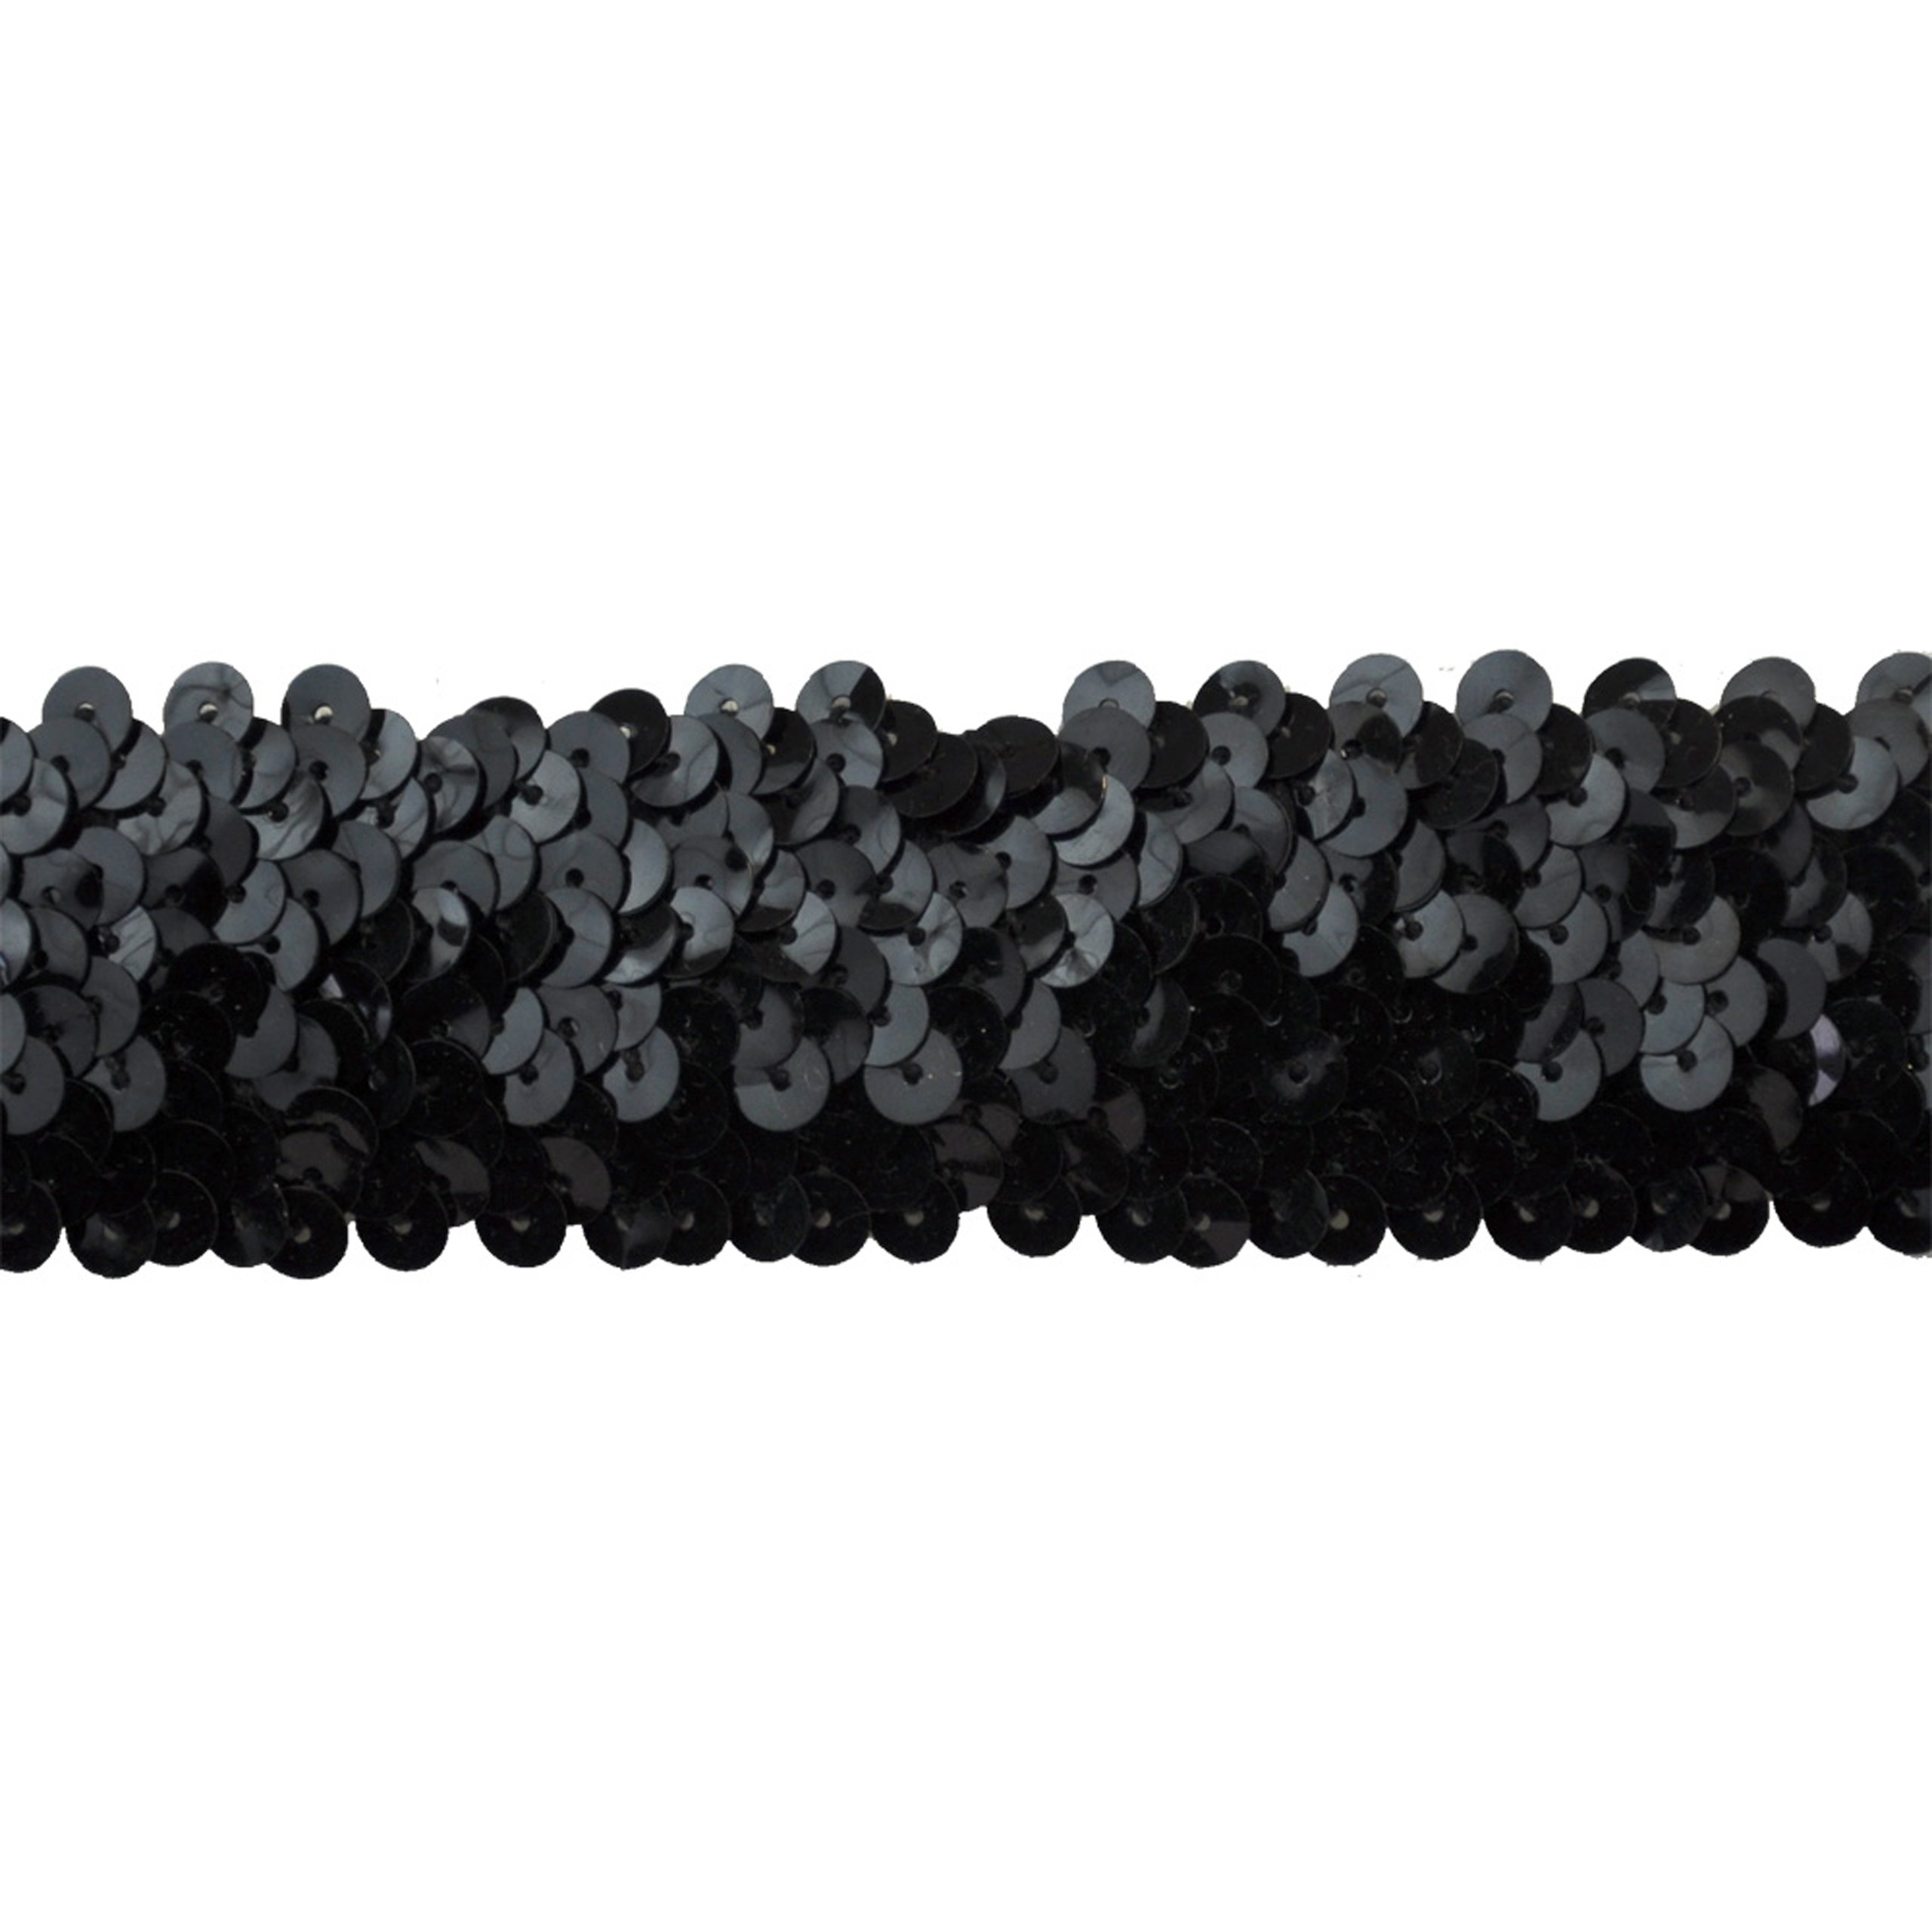 Sequin Trim 1-1/2-Inch Wide Polyester Stretchable Rolls for Arts and Crafts, 10-Yard, Black by Sequin Trim